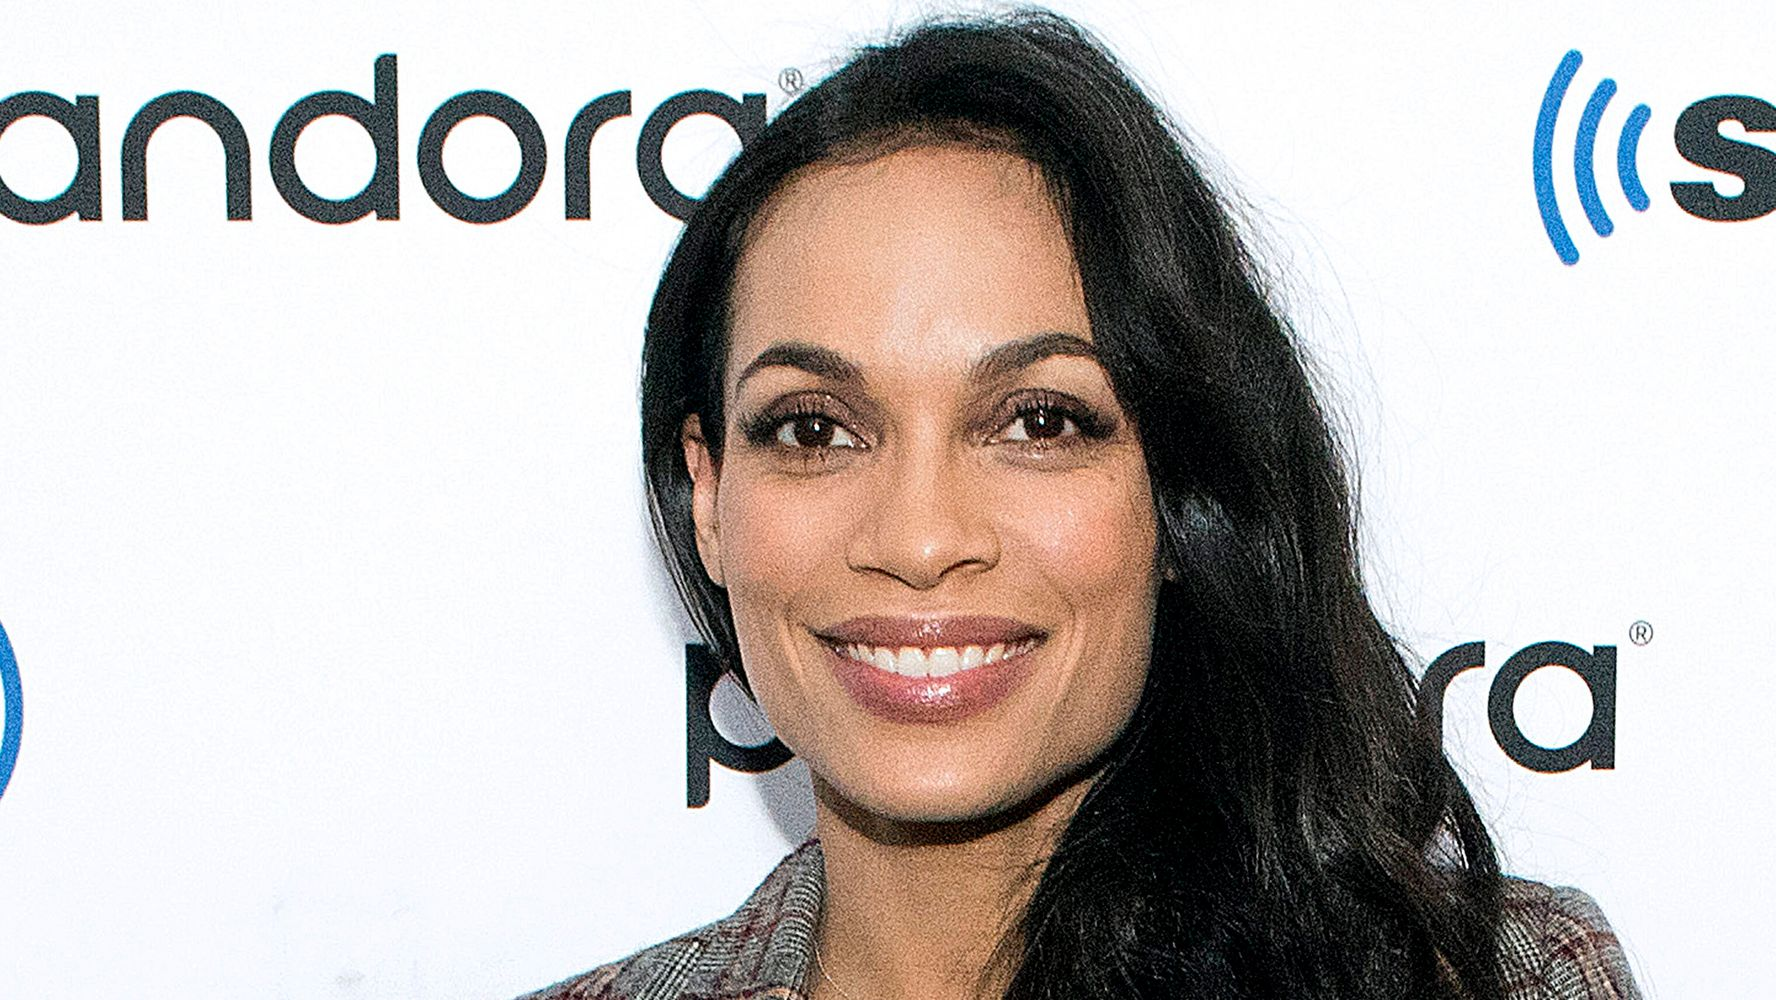 Rosario Dawson Opens Up About Her Sexuality And That 'Coming Out' Instagram Post